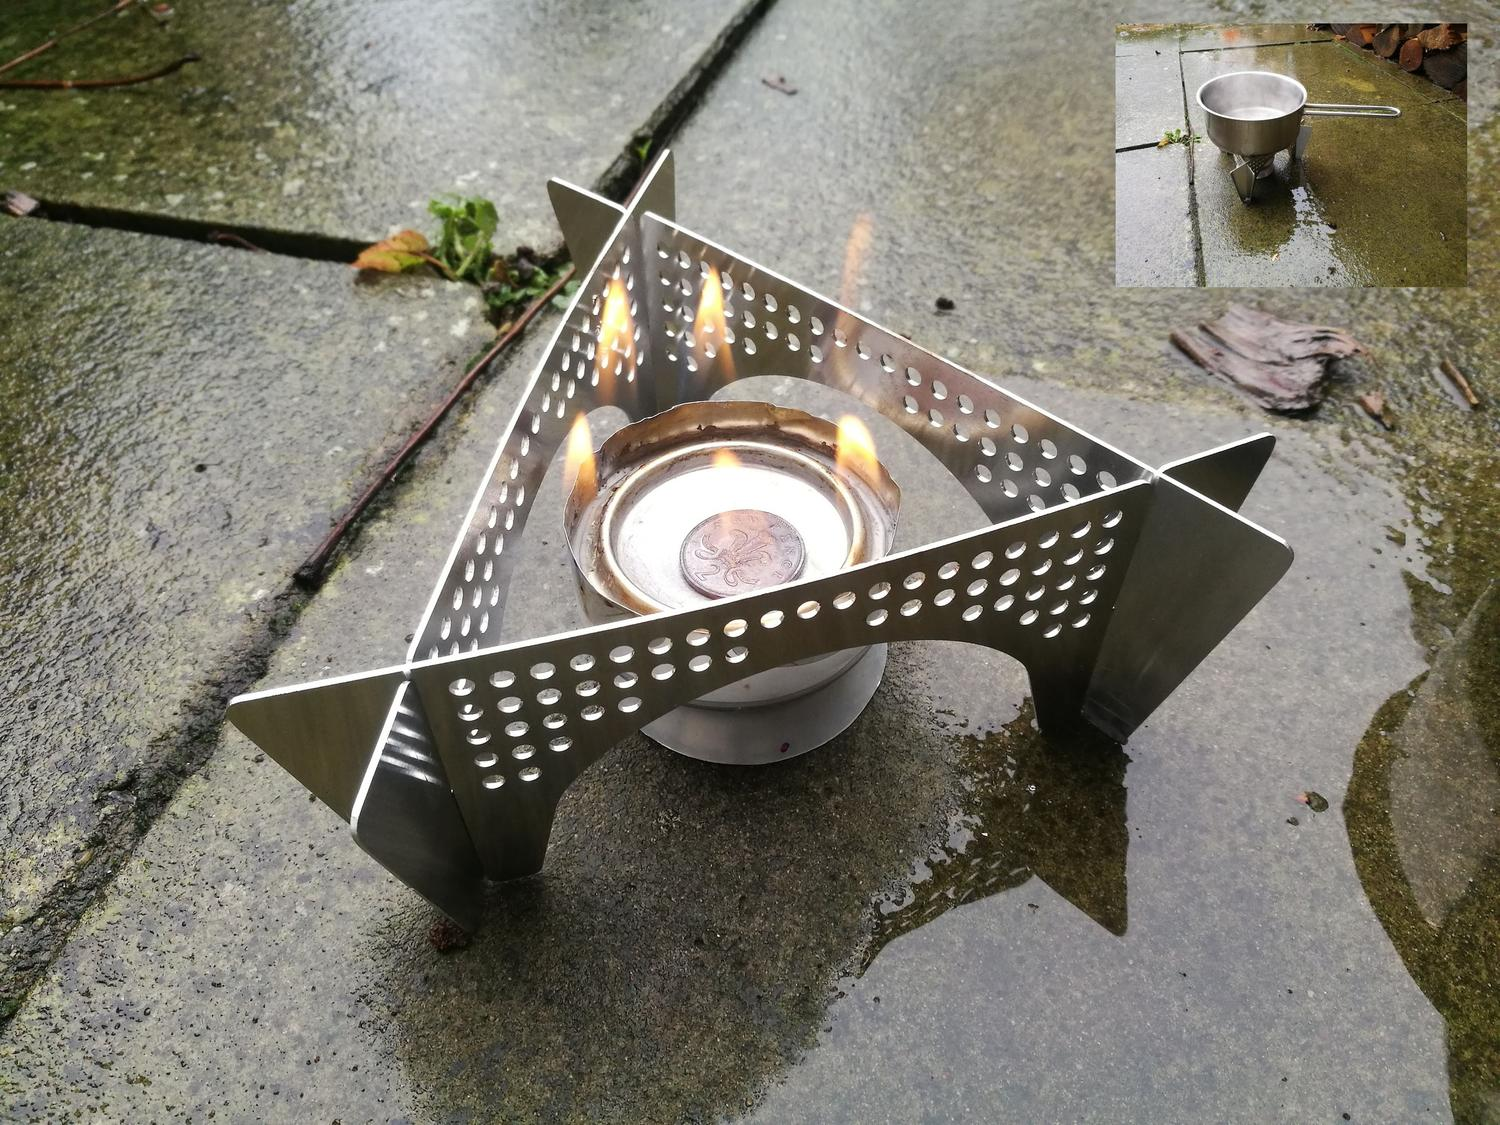 Laser Cut Stove Support Stand Base And Wind Shield For Outdoor Camping Plasma Cut Free DXF File